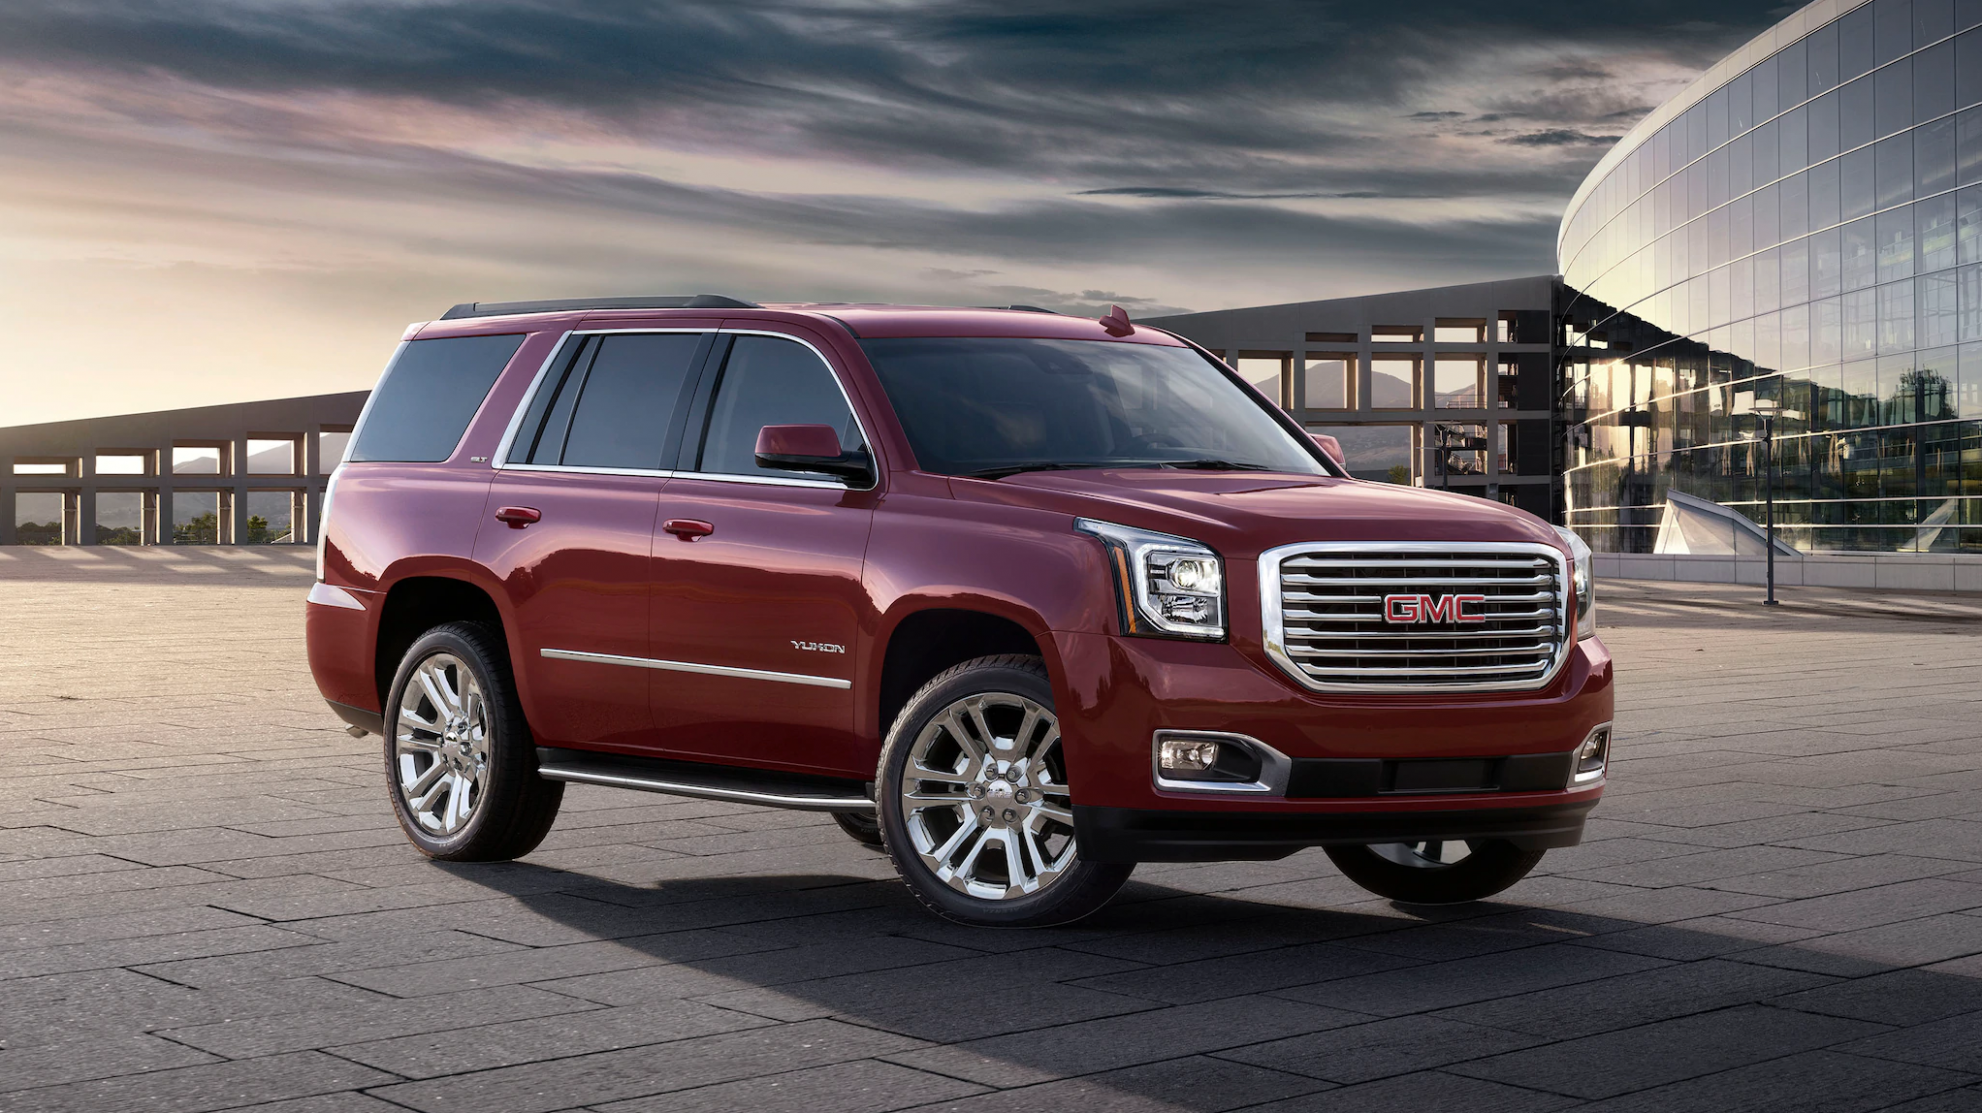 7 GMC Yukon Review, Pricing, and Specs